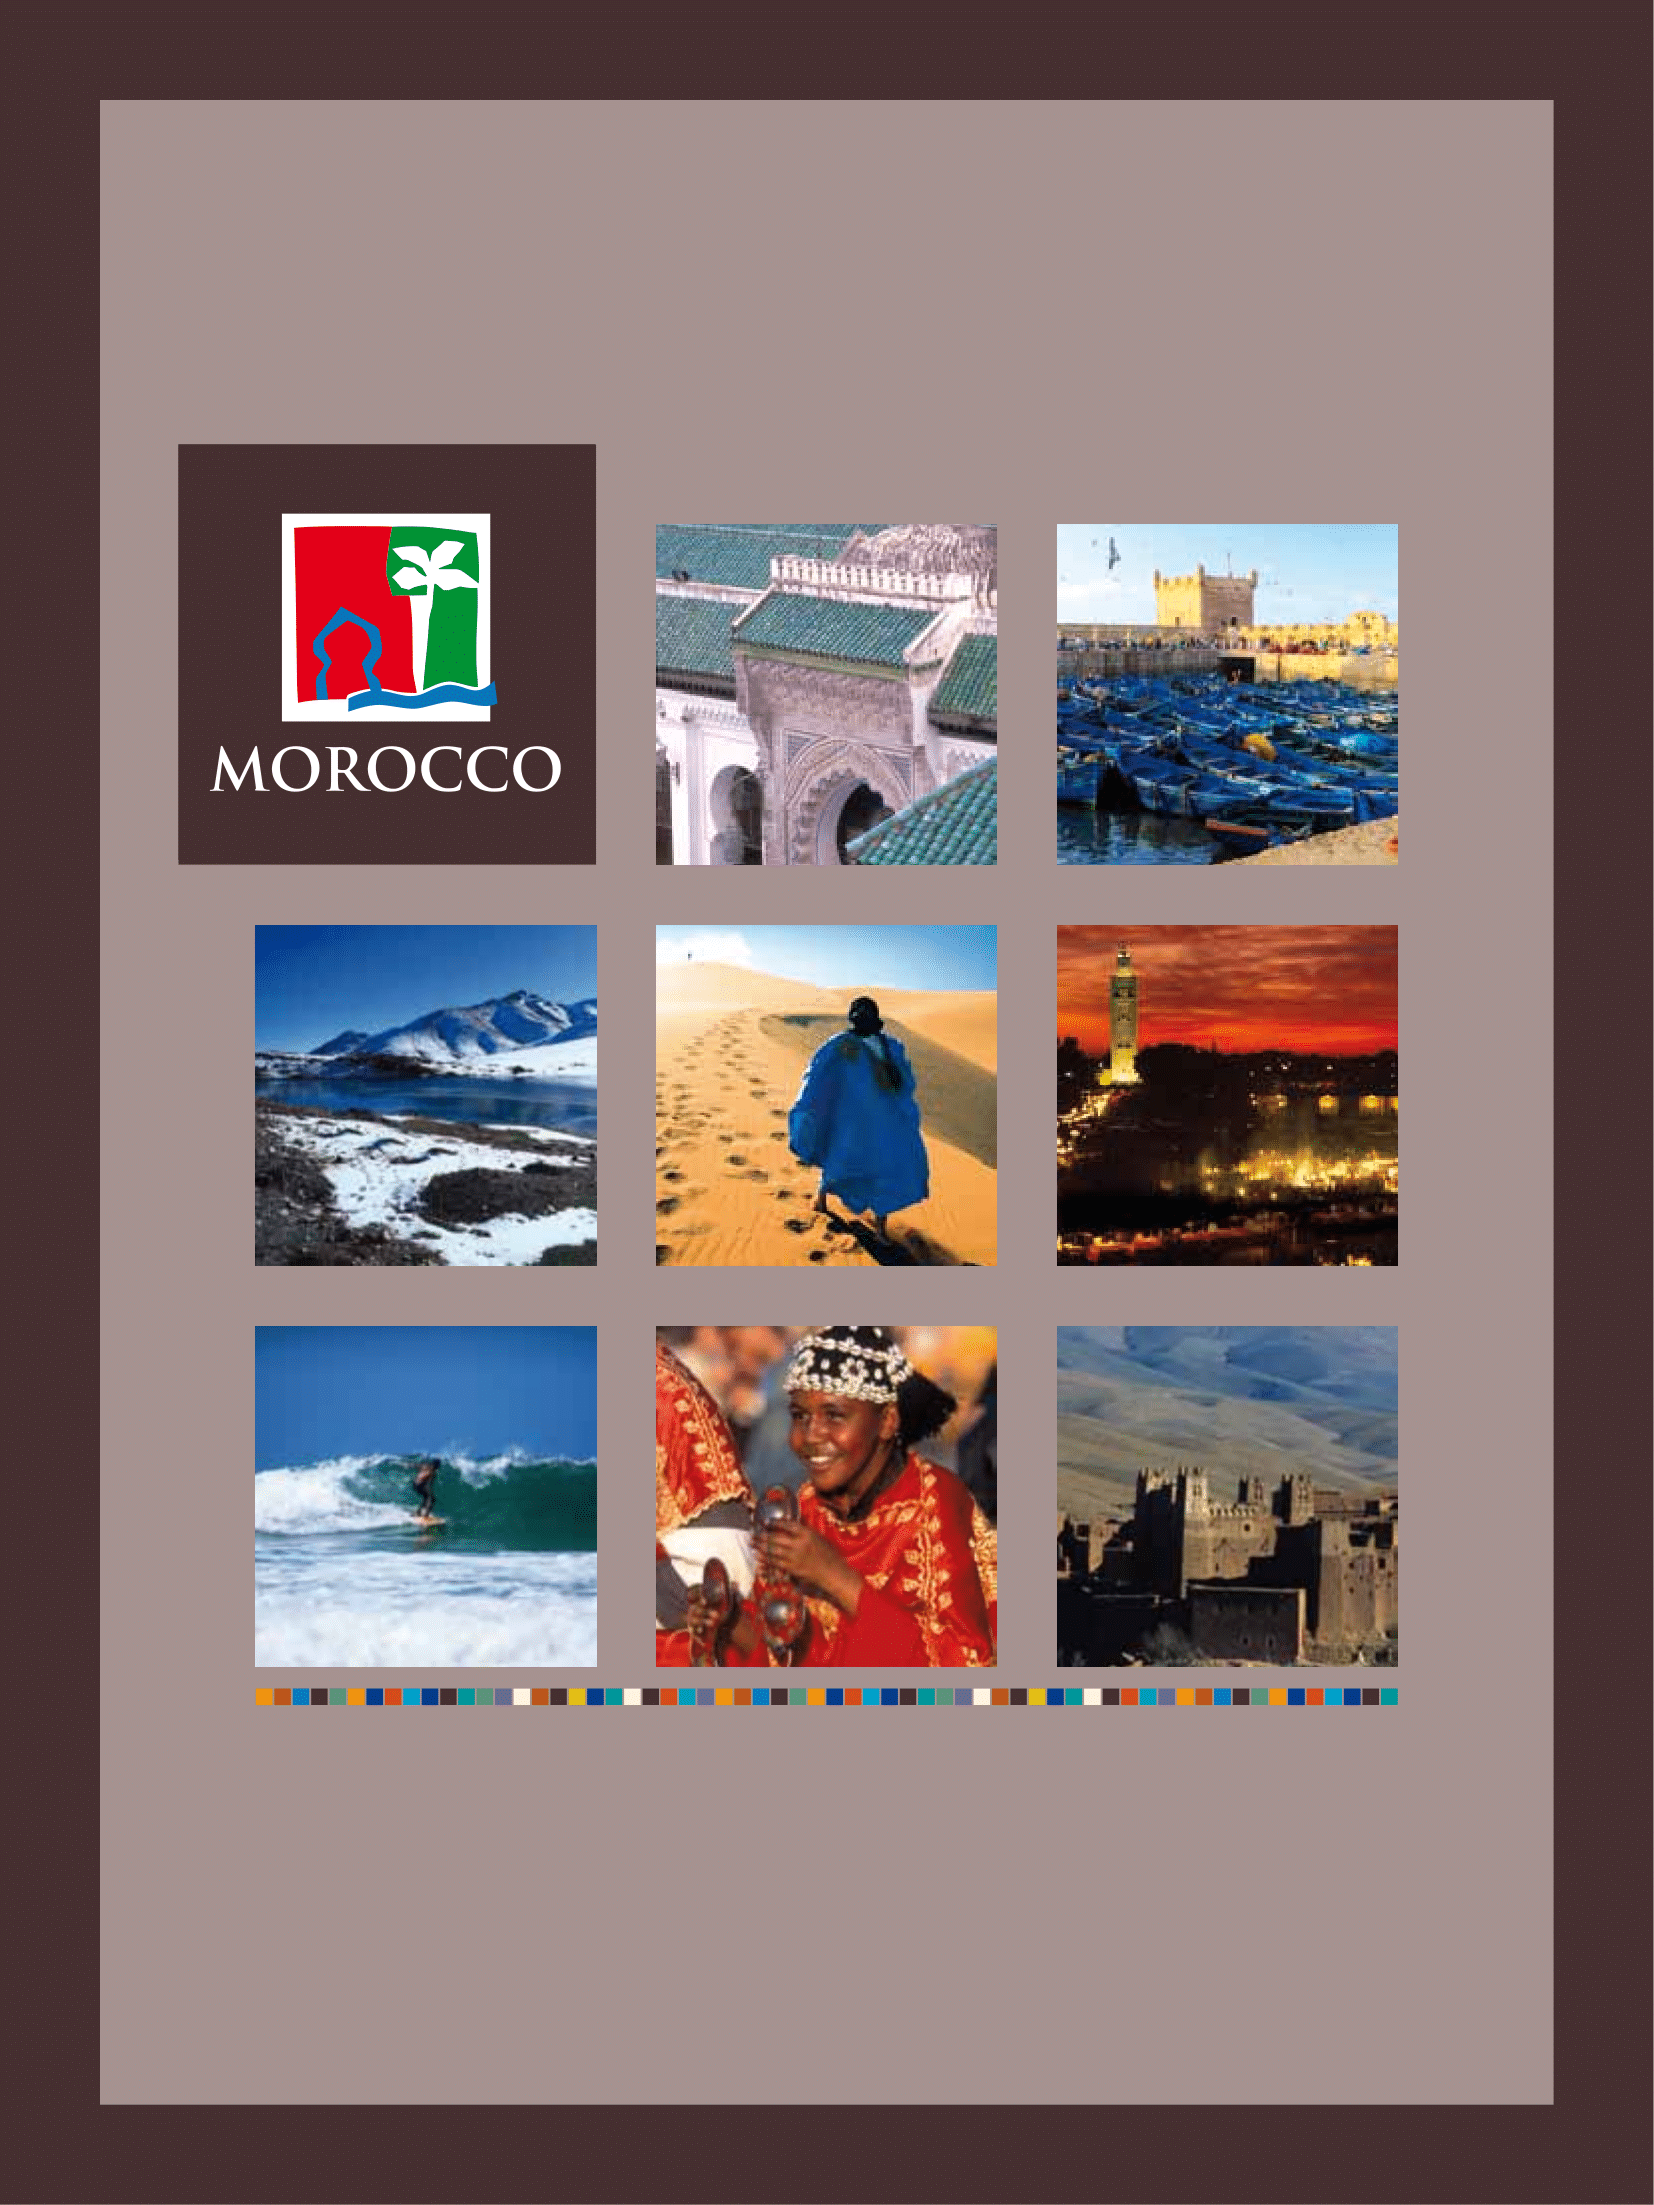 Morocco at a Glance